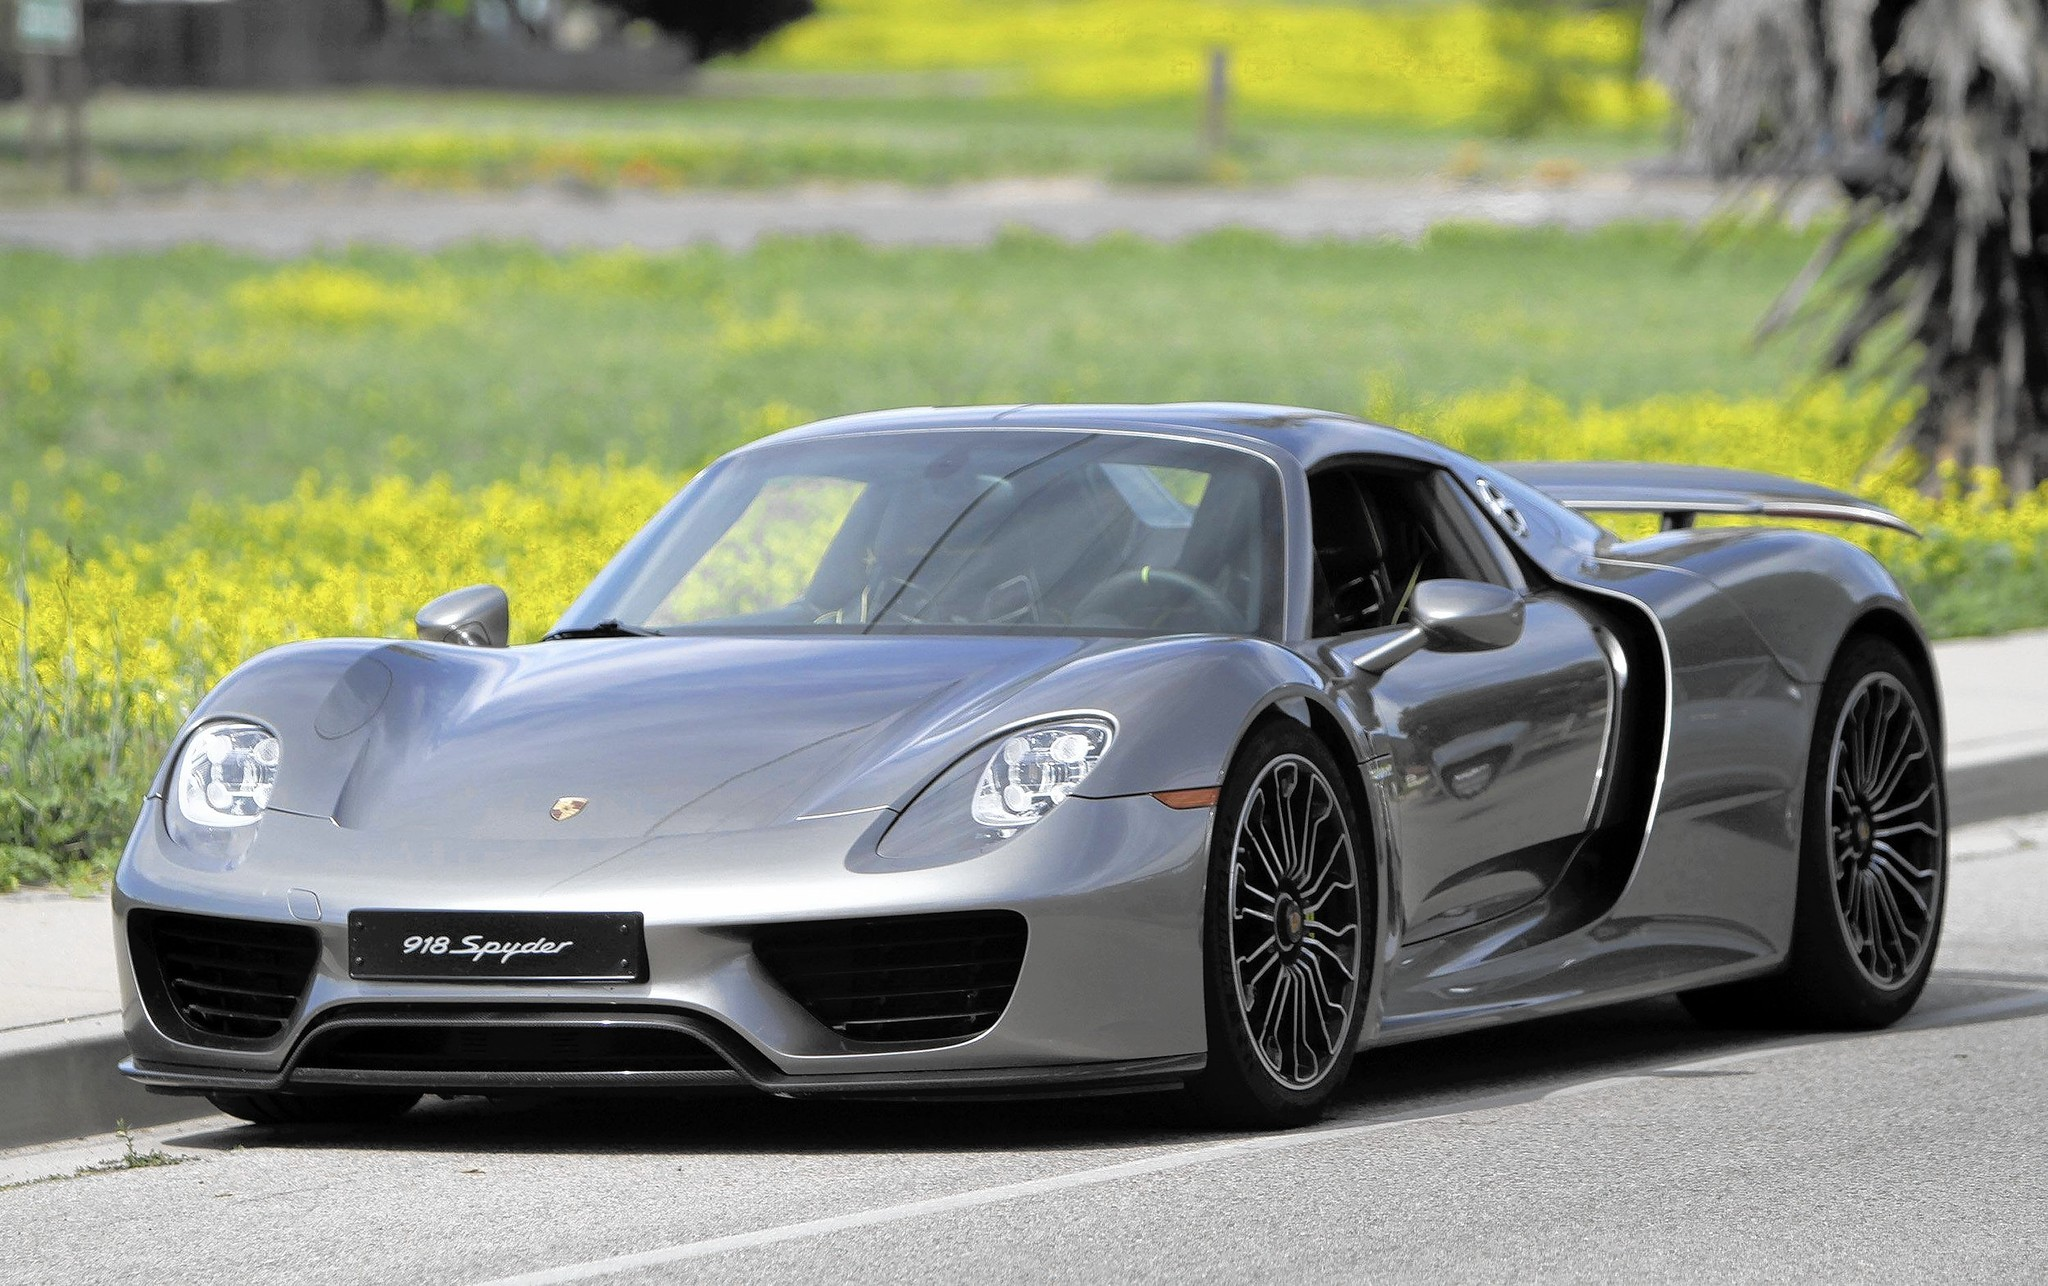 Rise of the efficient supercar